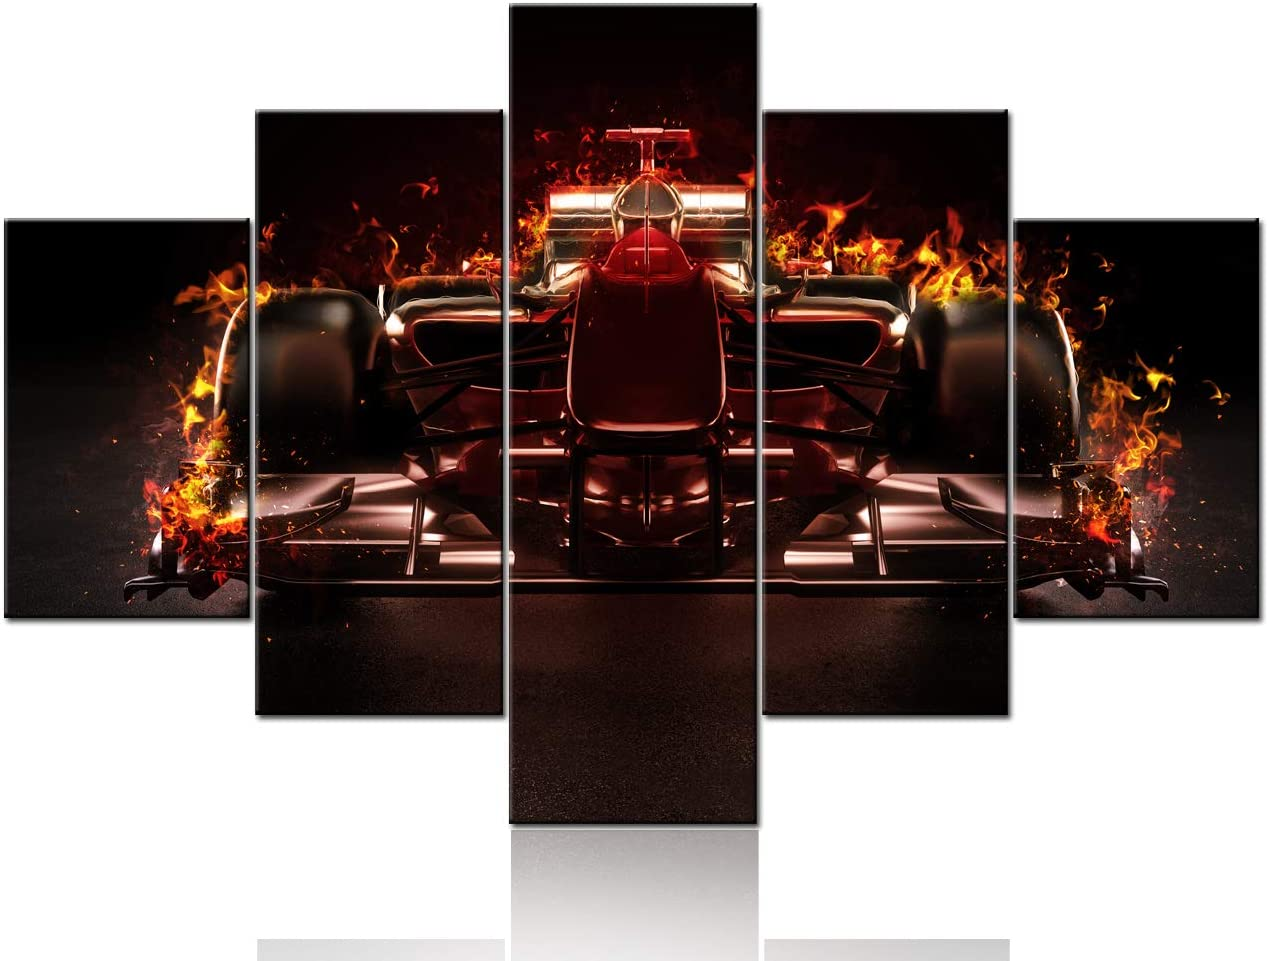 Amazon Com 5 Pieces Abstract Canvas Wall Art F1 Racing Car With Fire 3d Model Design On Black Background Picture Painting For Home Decoration Stretched And Framed Ready To Hang Prints And Poster